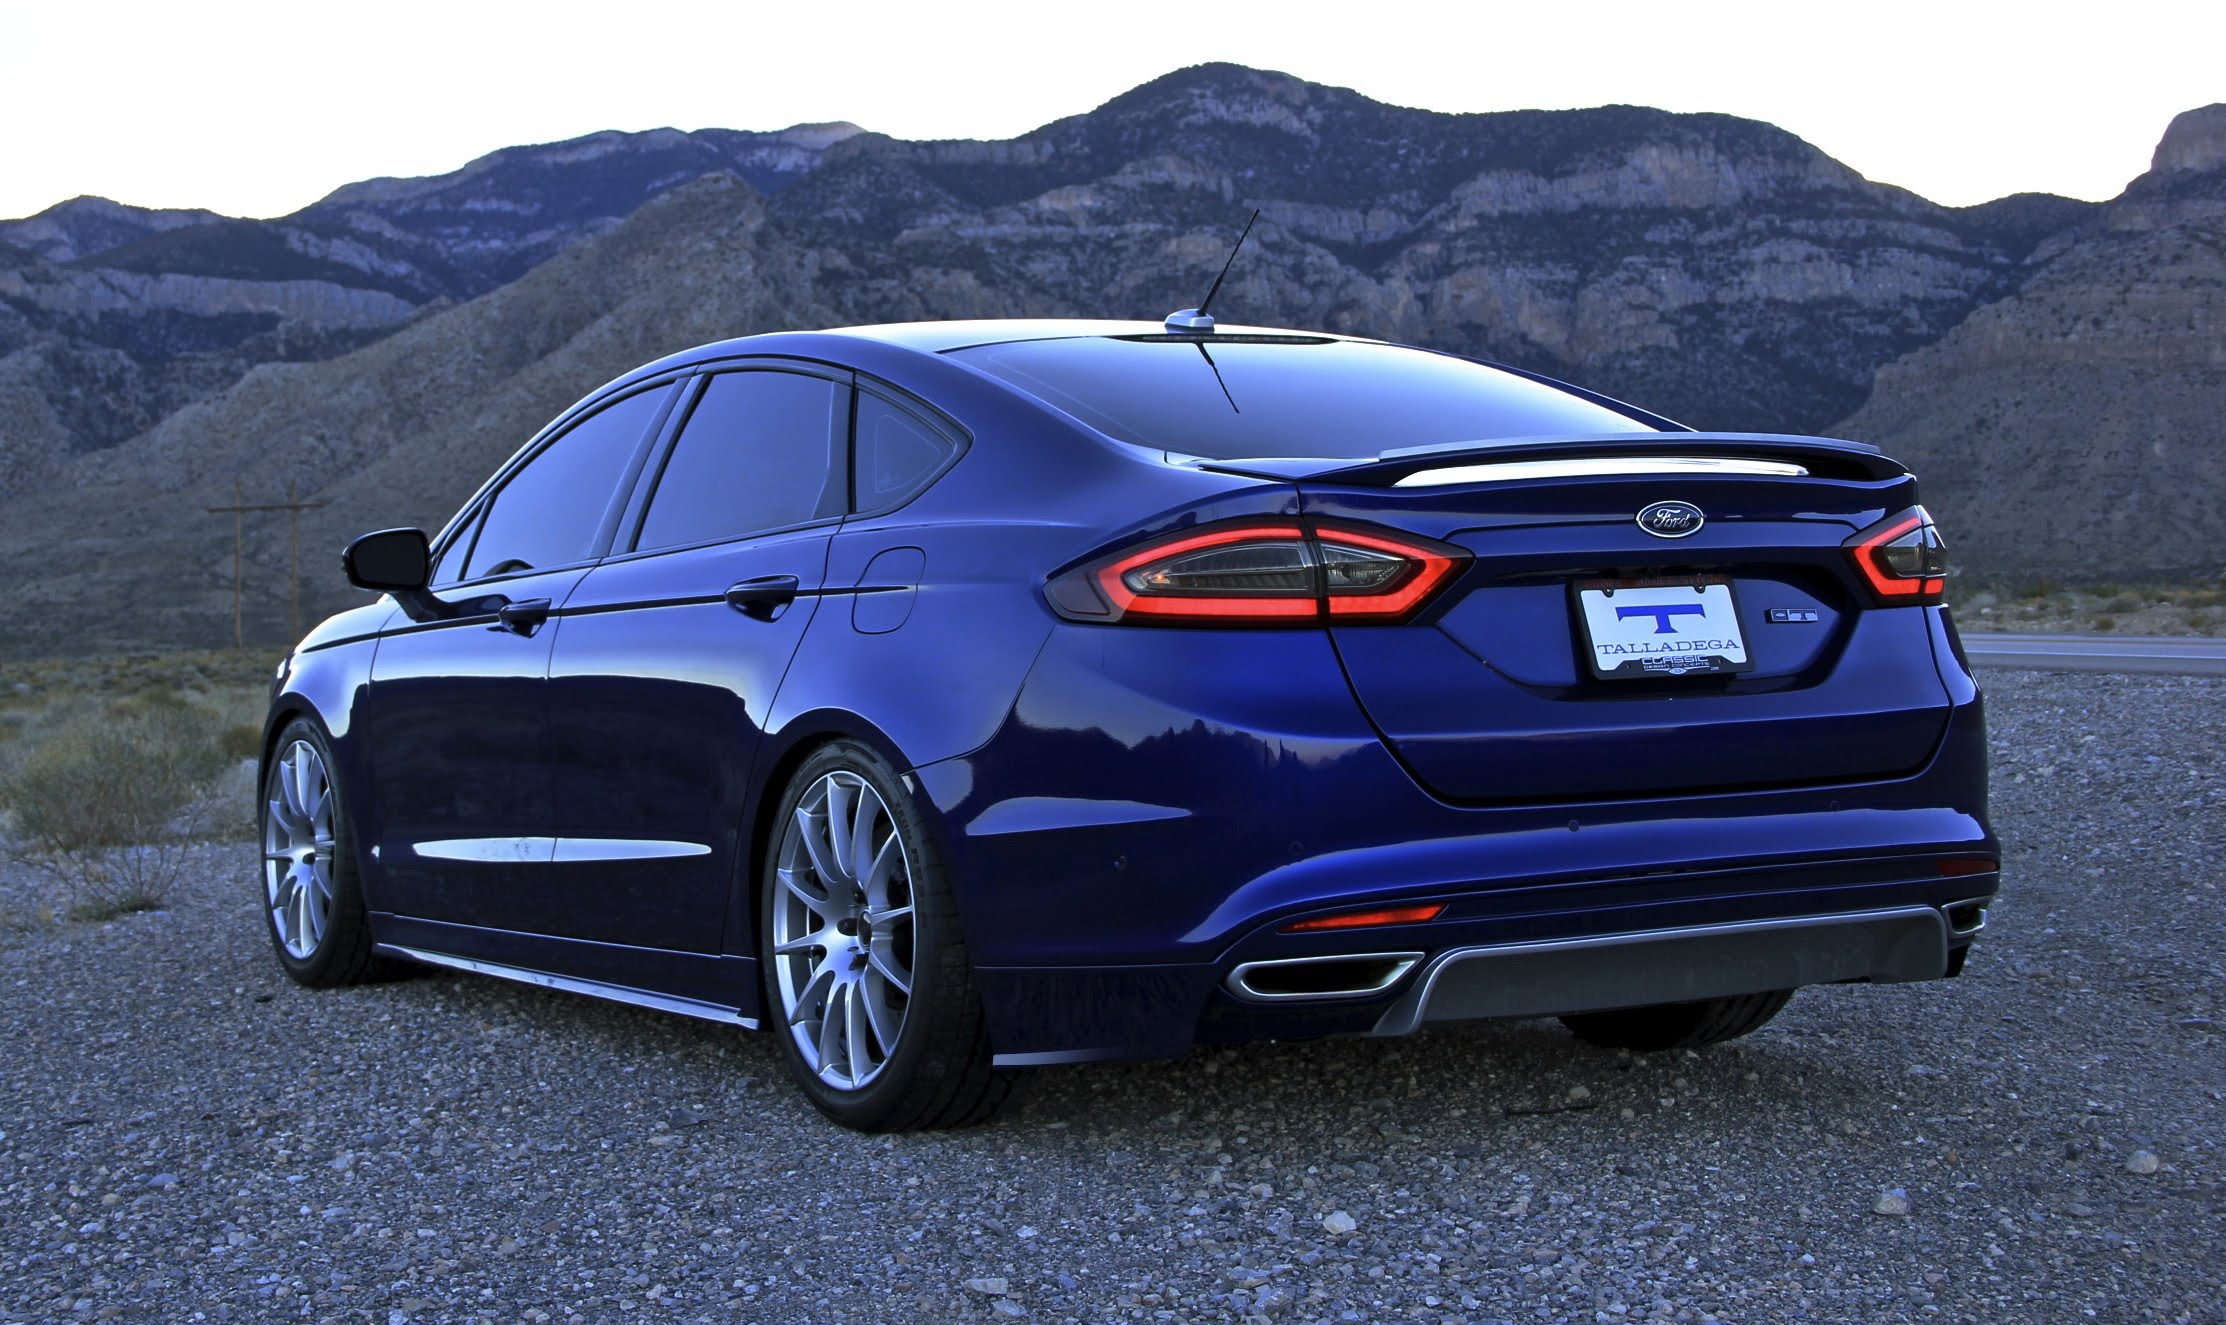 2013 Ford Fusion Wallpaper